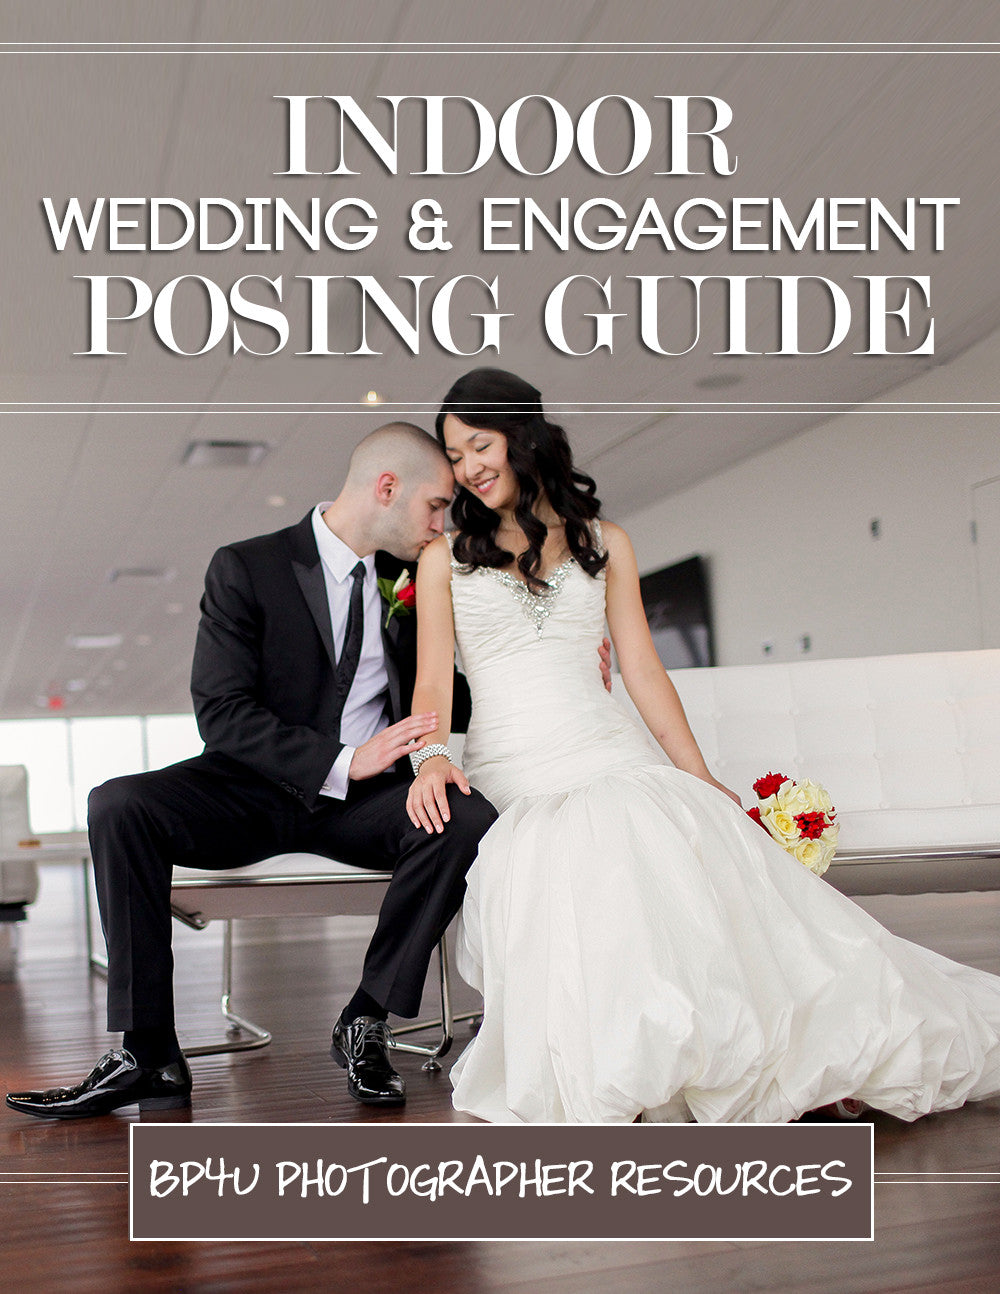 Wedding Photography Guide: Indoor Wedding & Engagement Photography Posing Guide